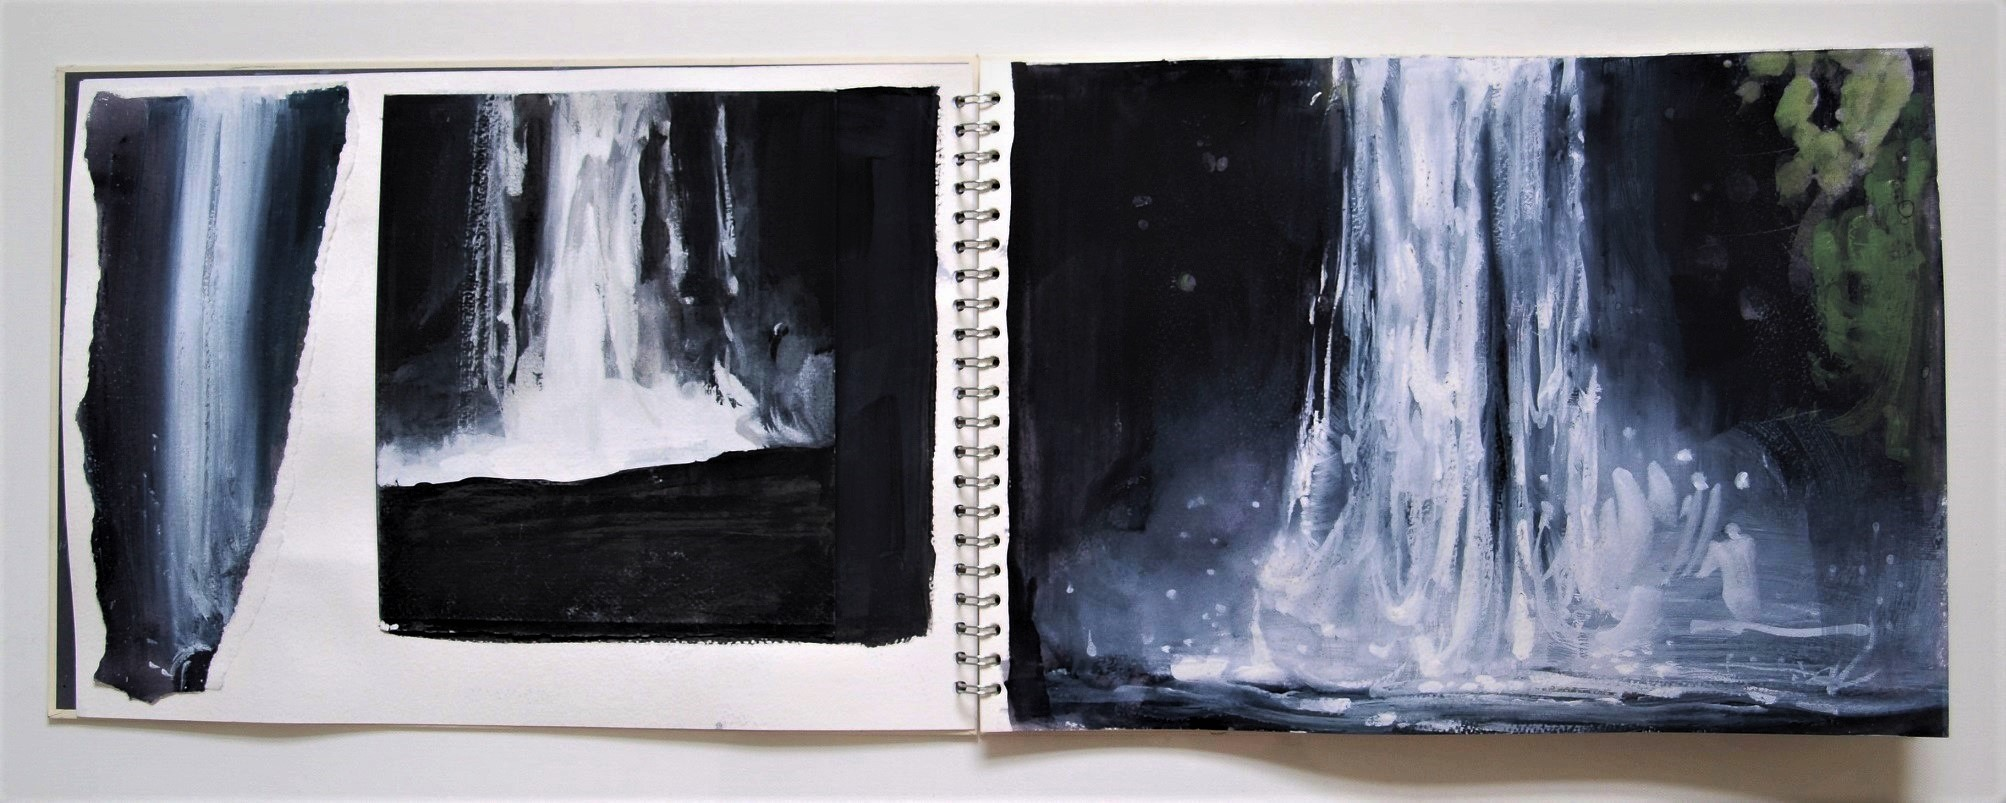 ICELAND_LIGHT_INTO_DARK_Sketchbook_pages 2 and 3_CORALGUEST2017.JPG